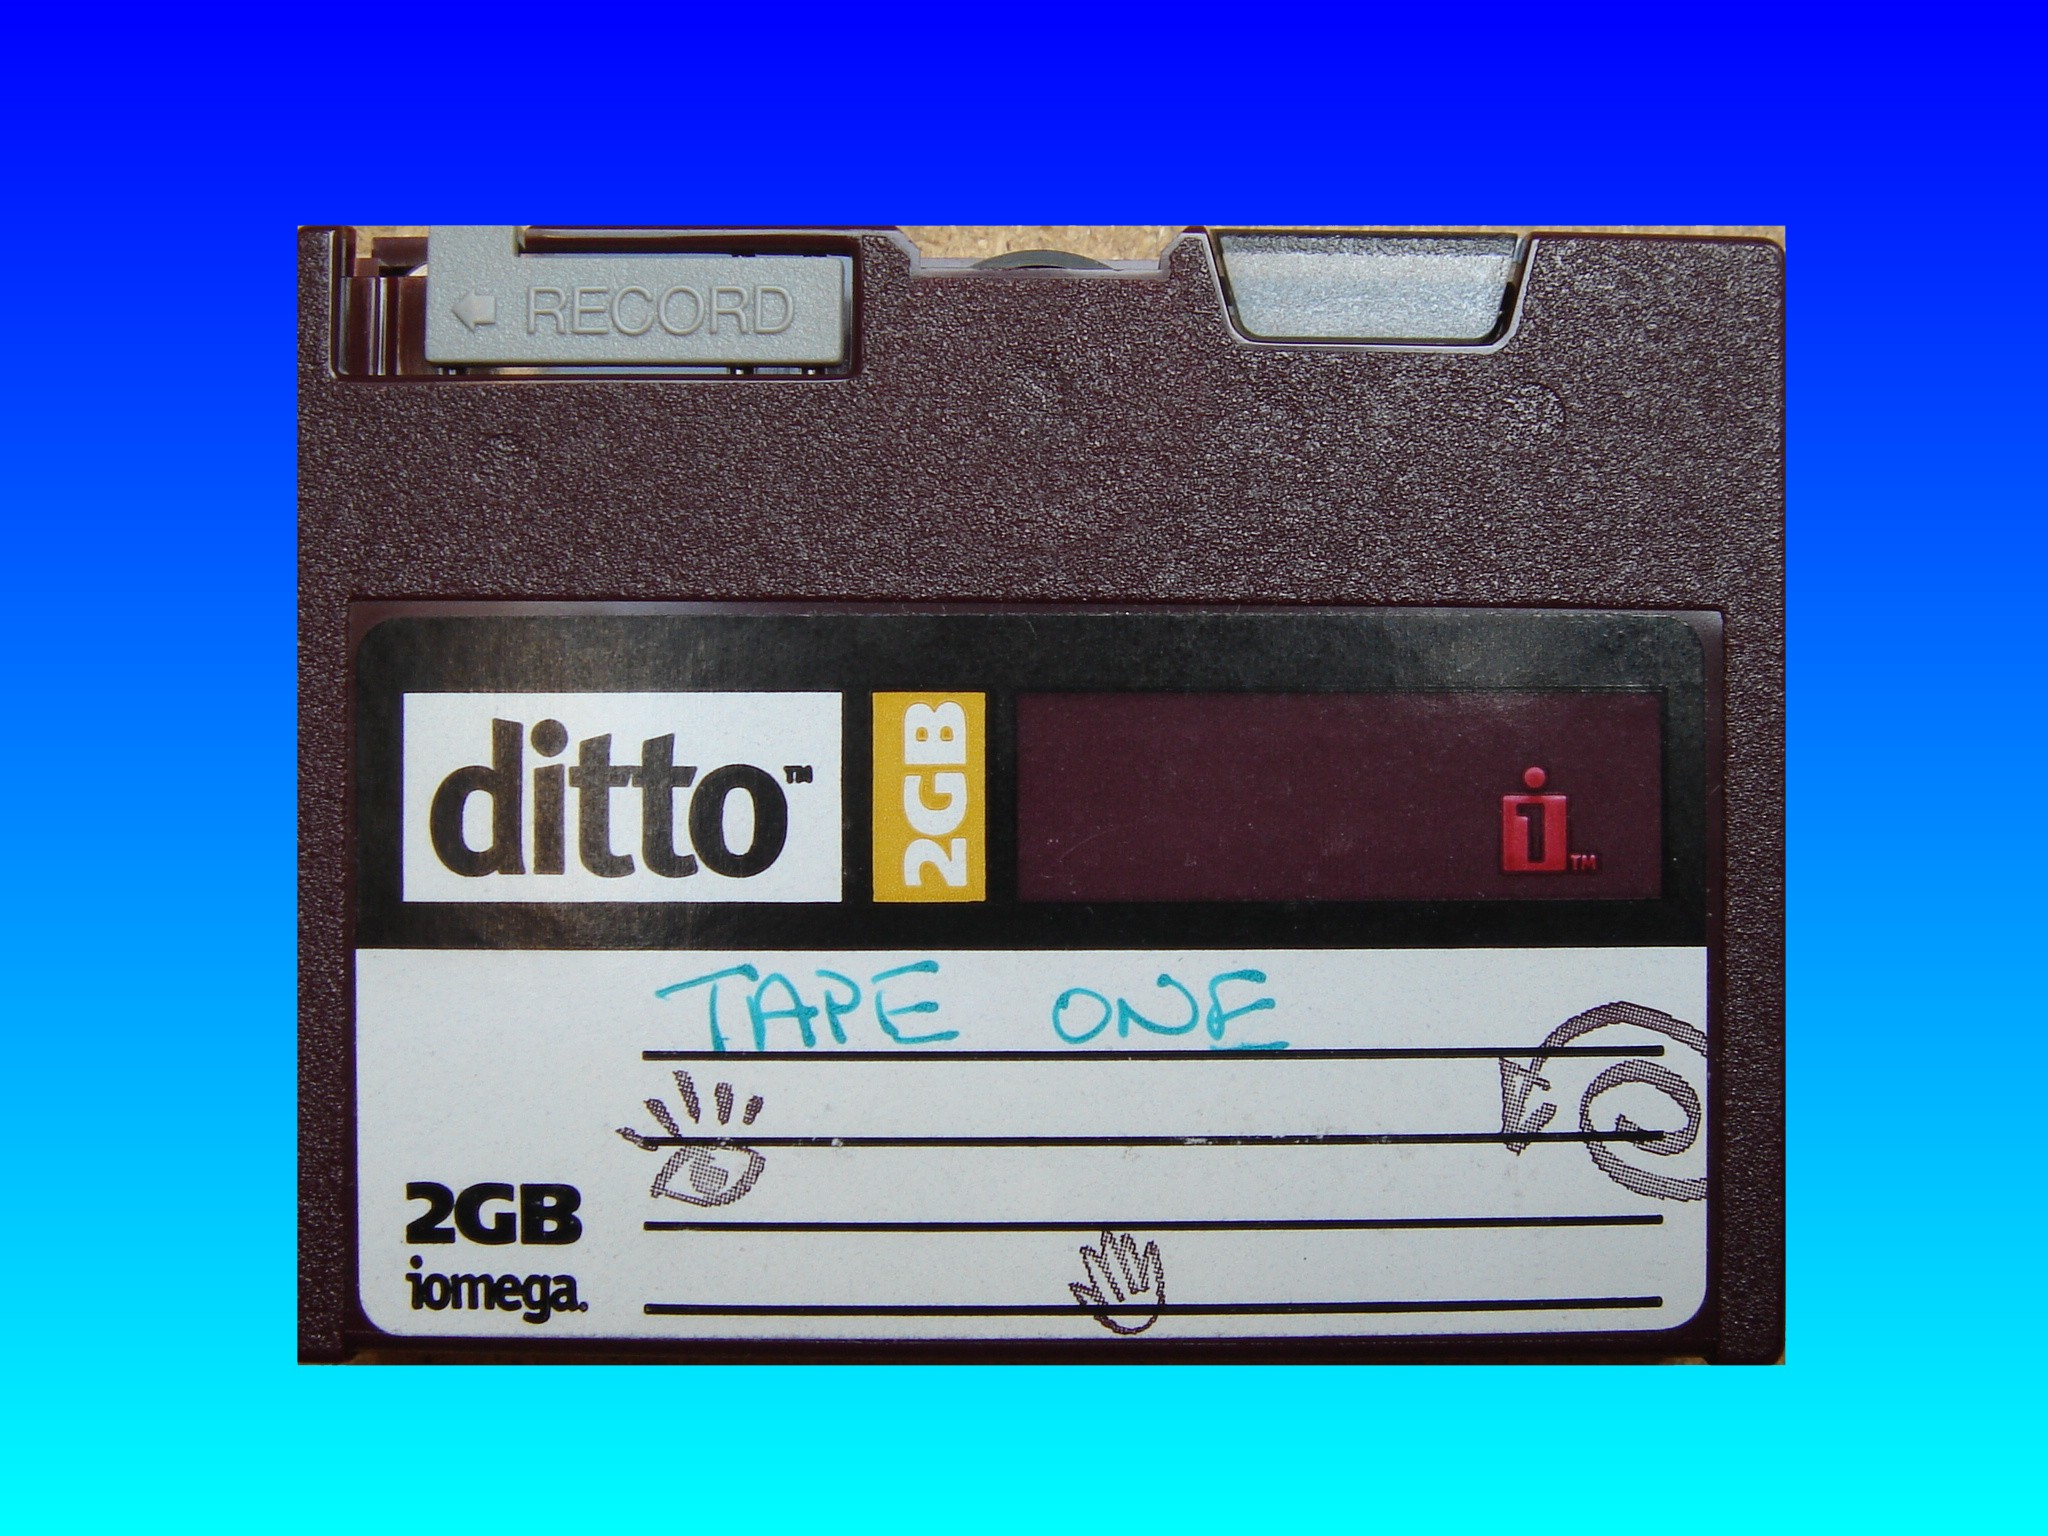 A Ditto 2GB Tape requiring data transfer.